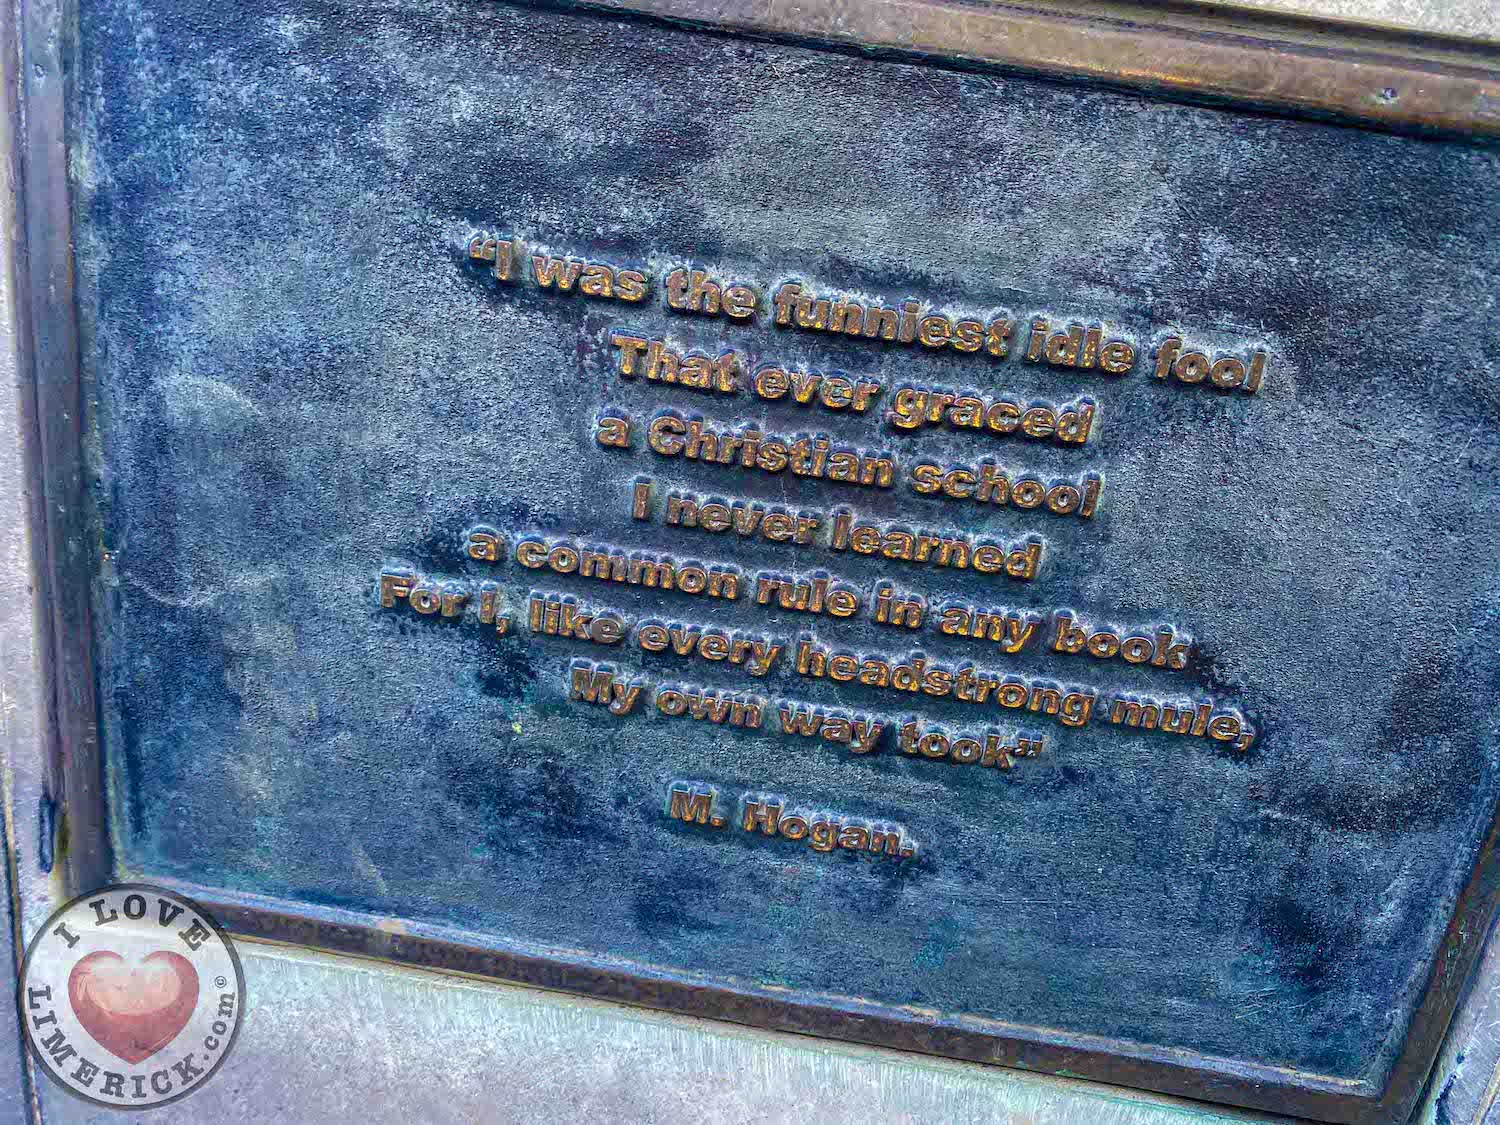 Bard of Thomond - The quote on the Bard of Thomond statue. Picture: ilovelimerick